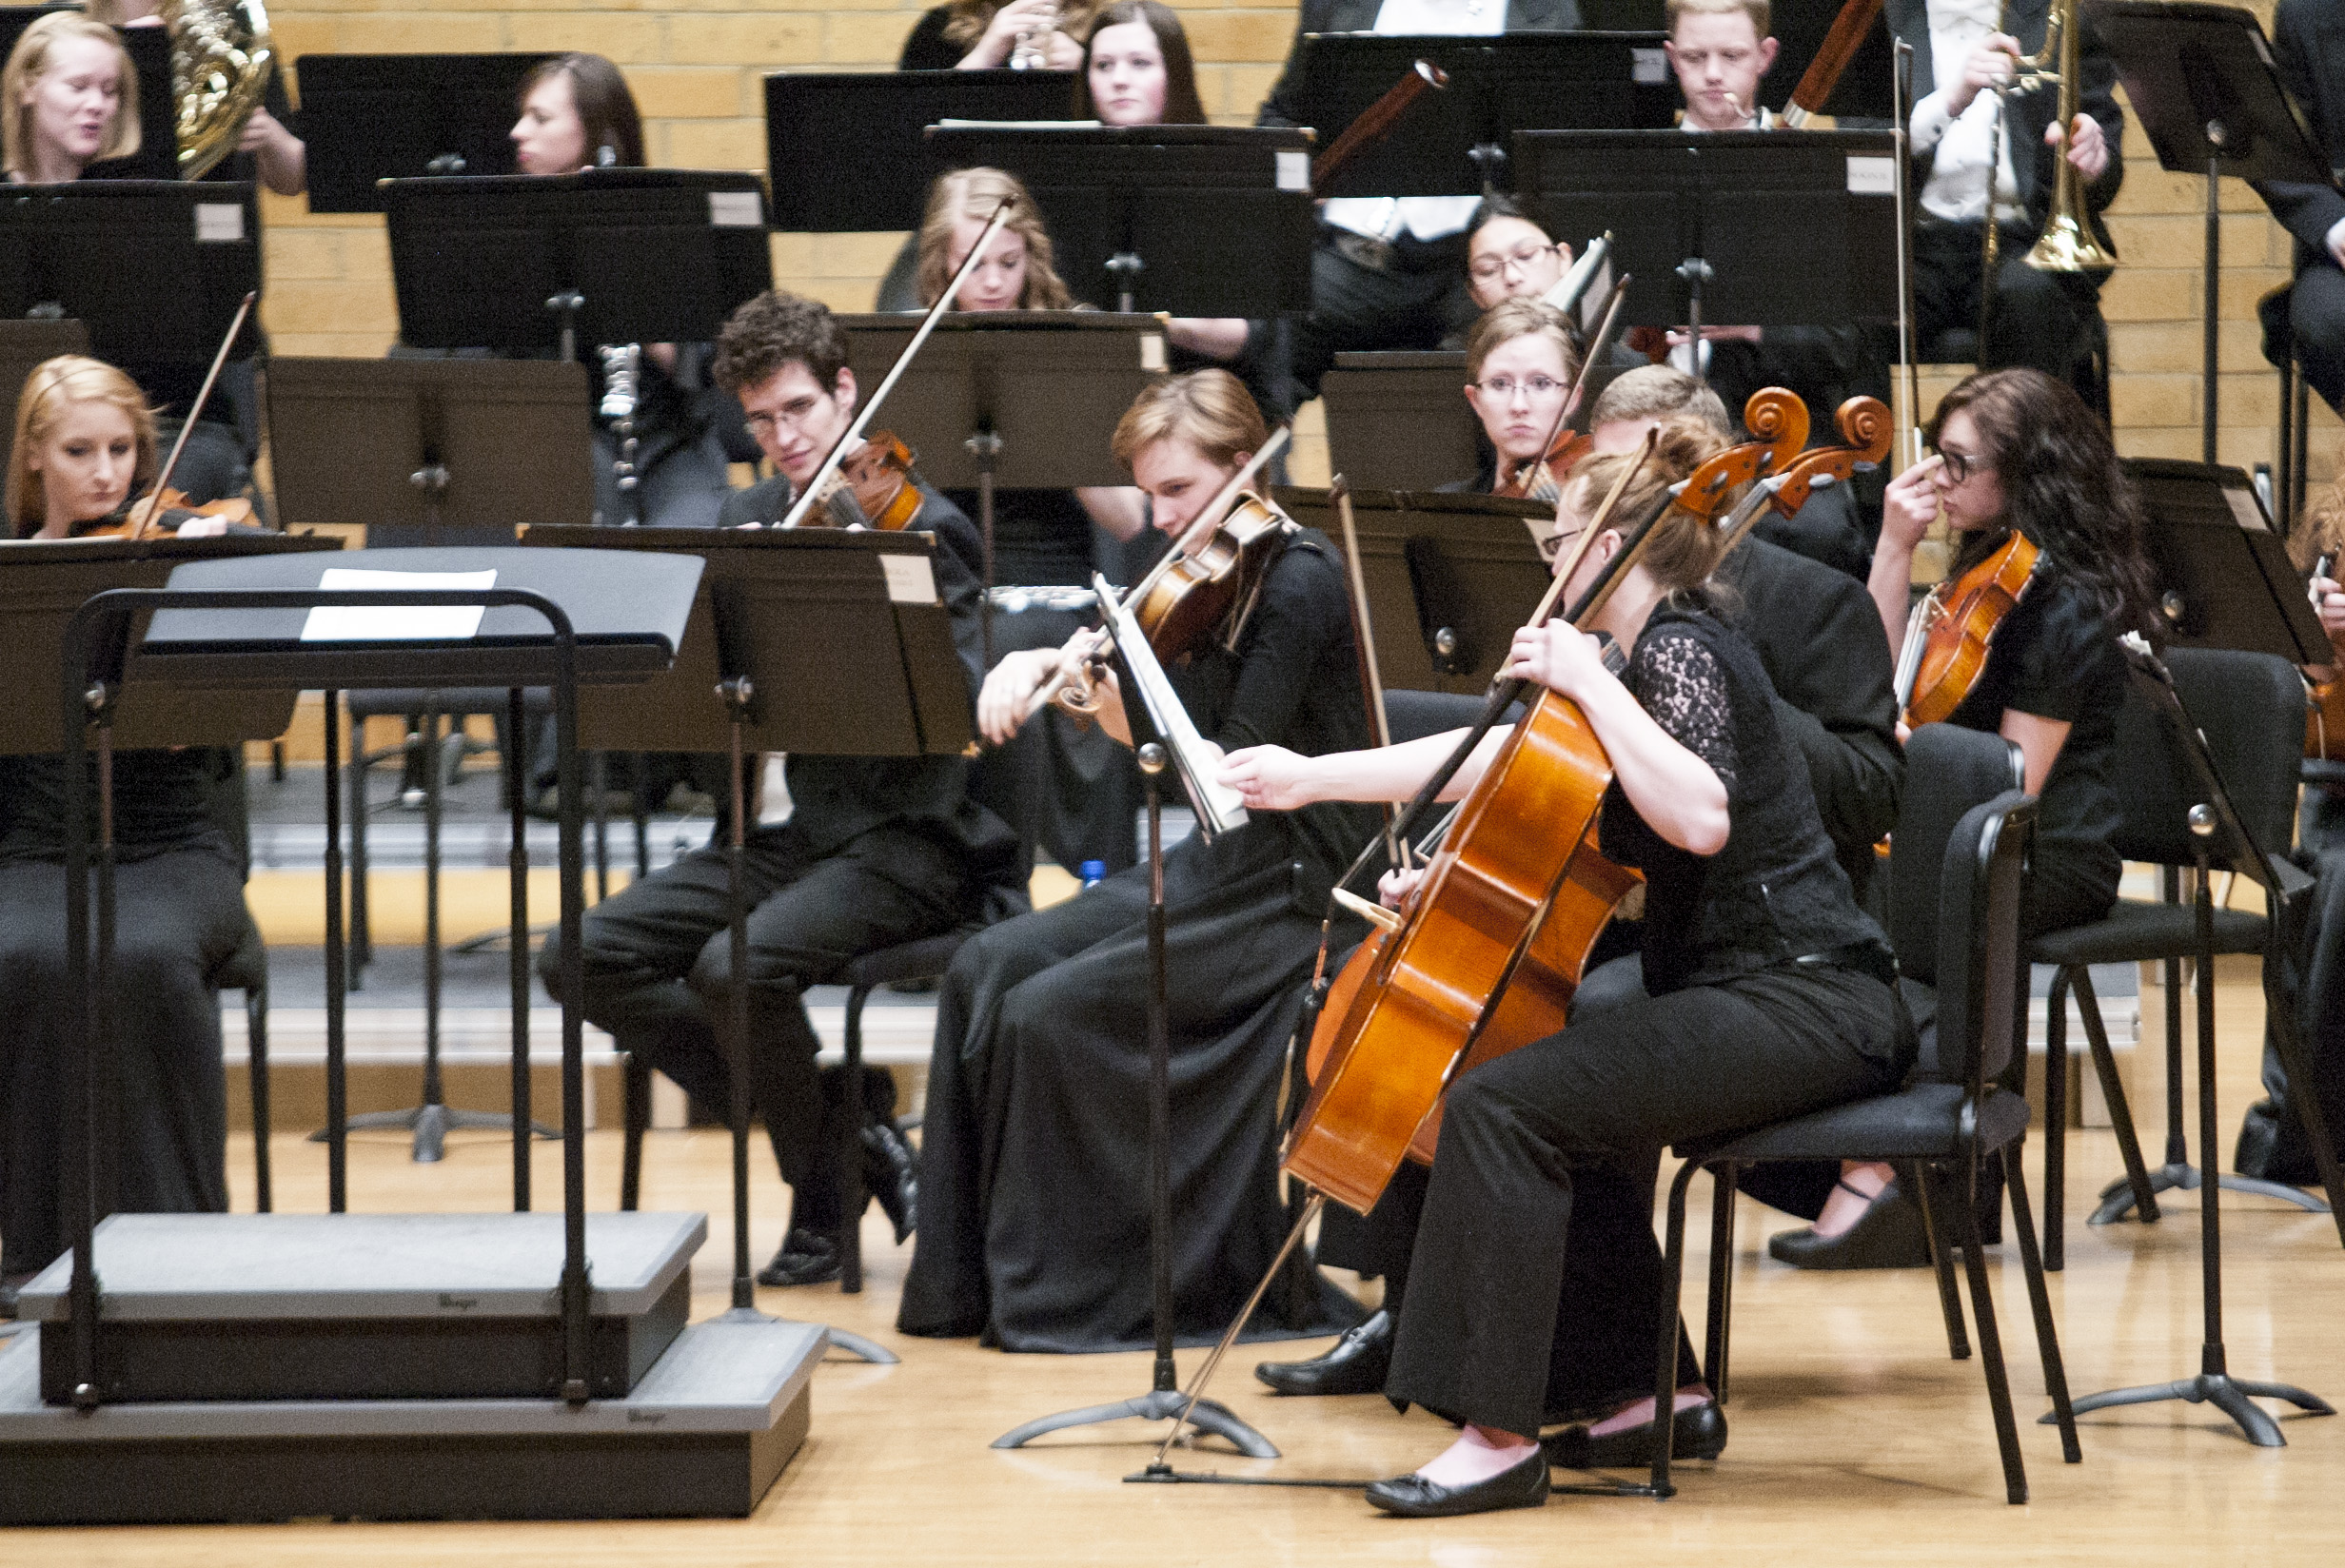 Symphony orchestra & choirs to perform at BYU-I